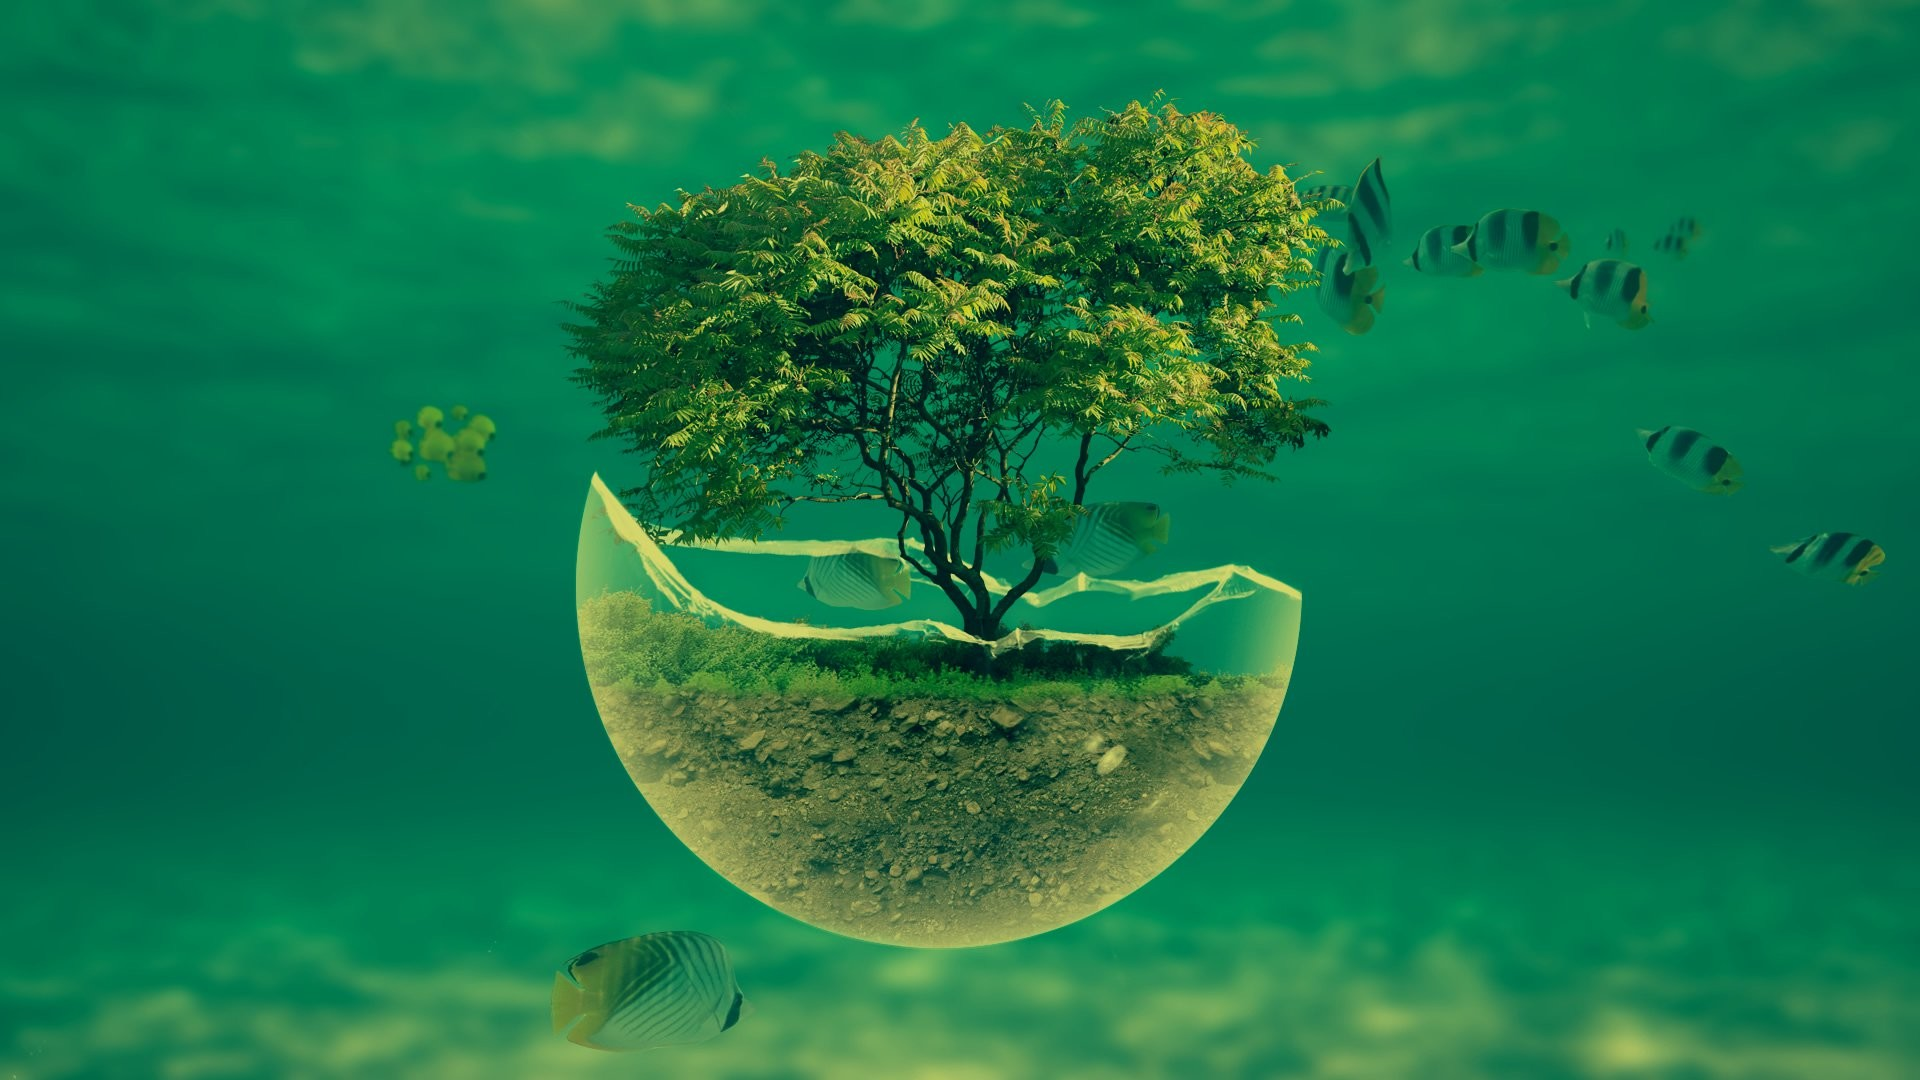 1920x1080 ... 1188_3d_abstract -underwater-tree-widescreen-hd-abstract- desktop-wallpaper ...